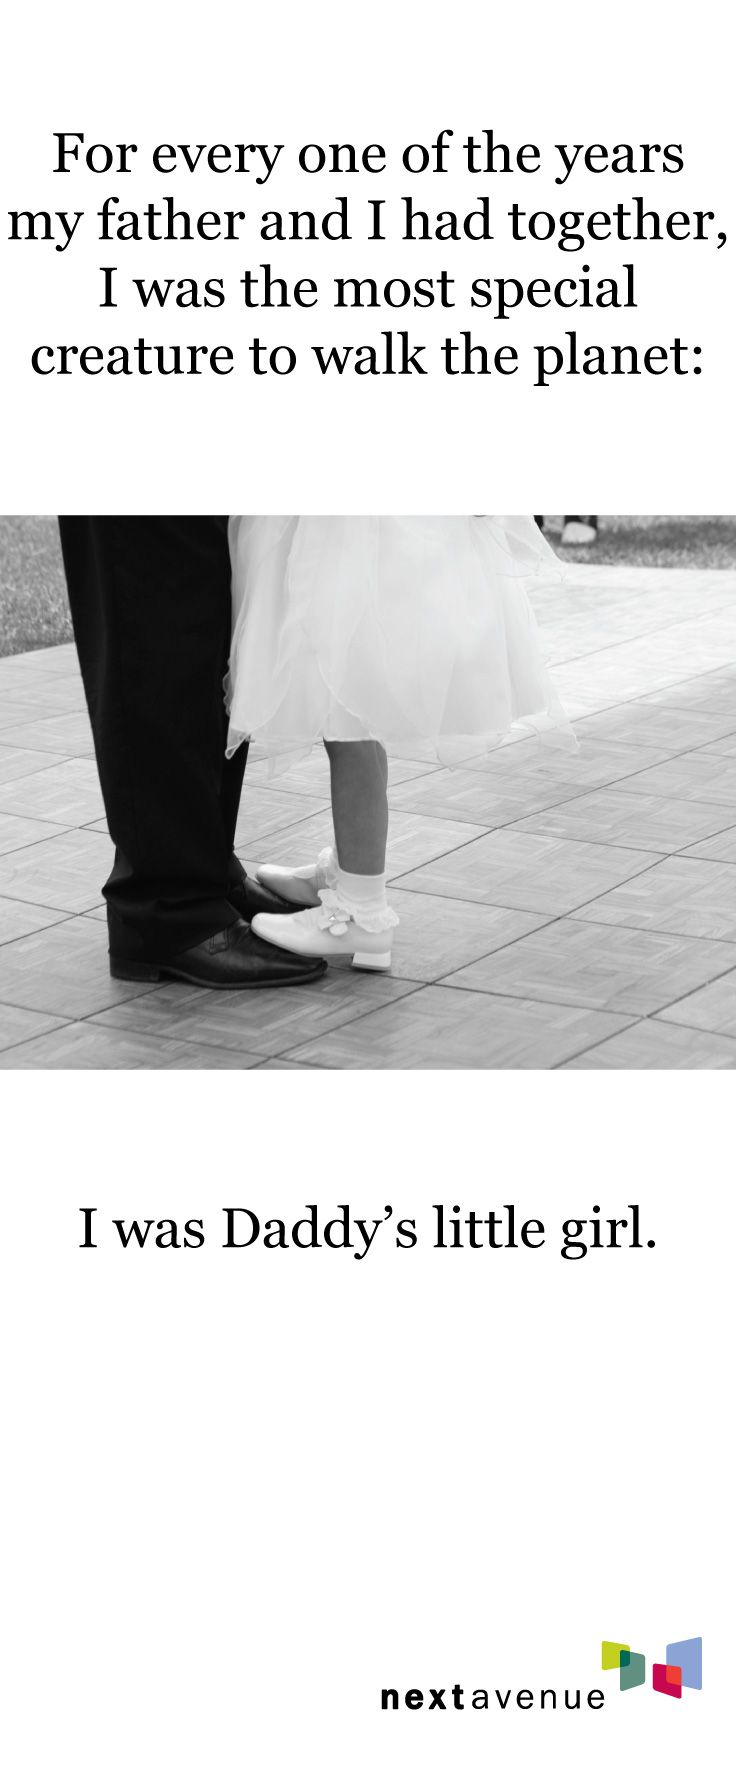 A favorite quote from one of our writers. Father's Day brings out the love in us Daddy's girls.